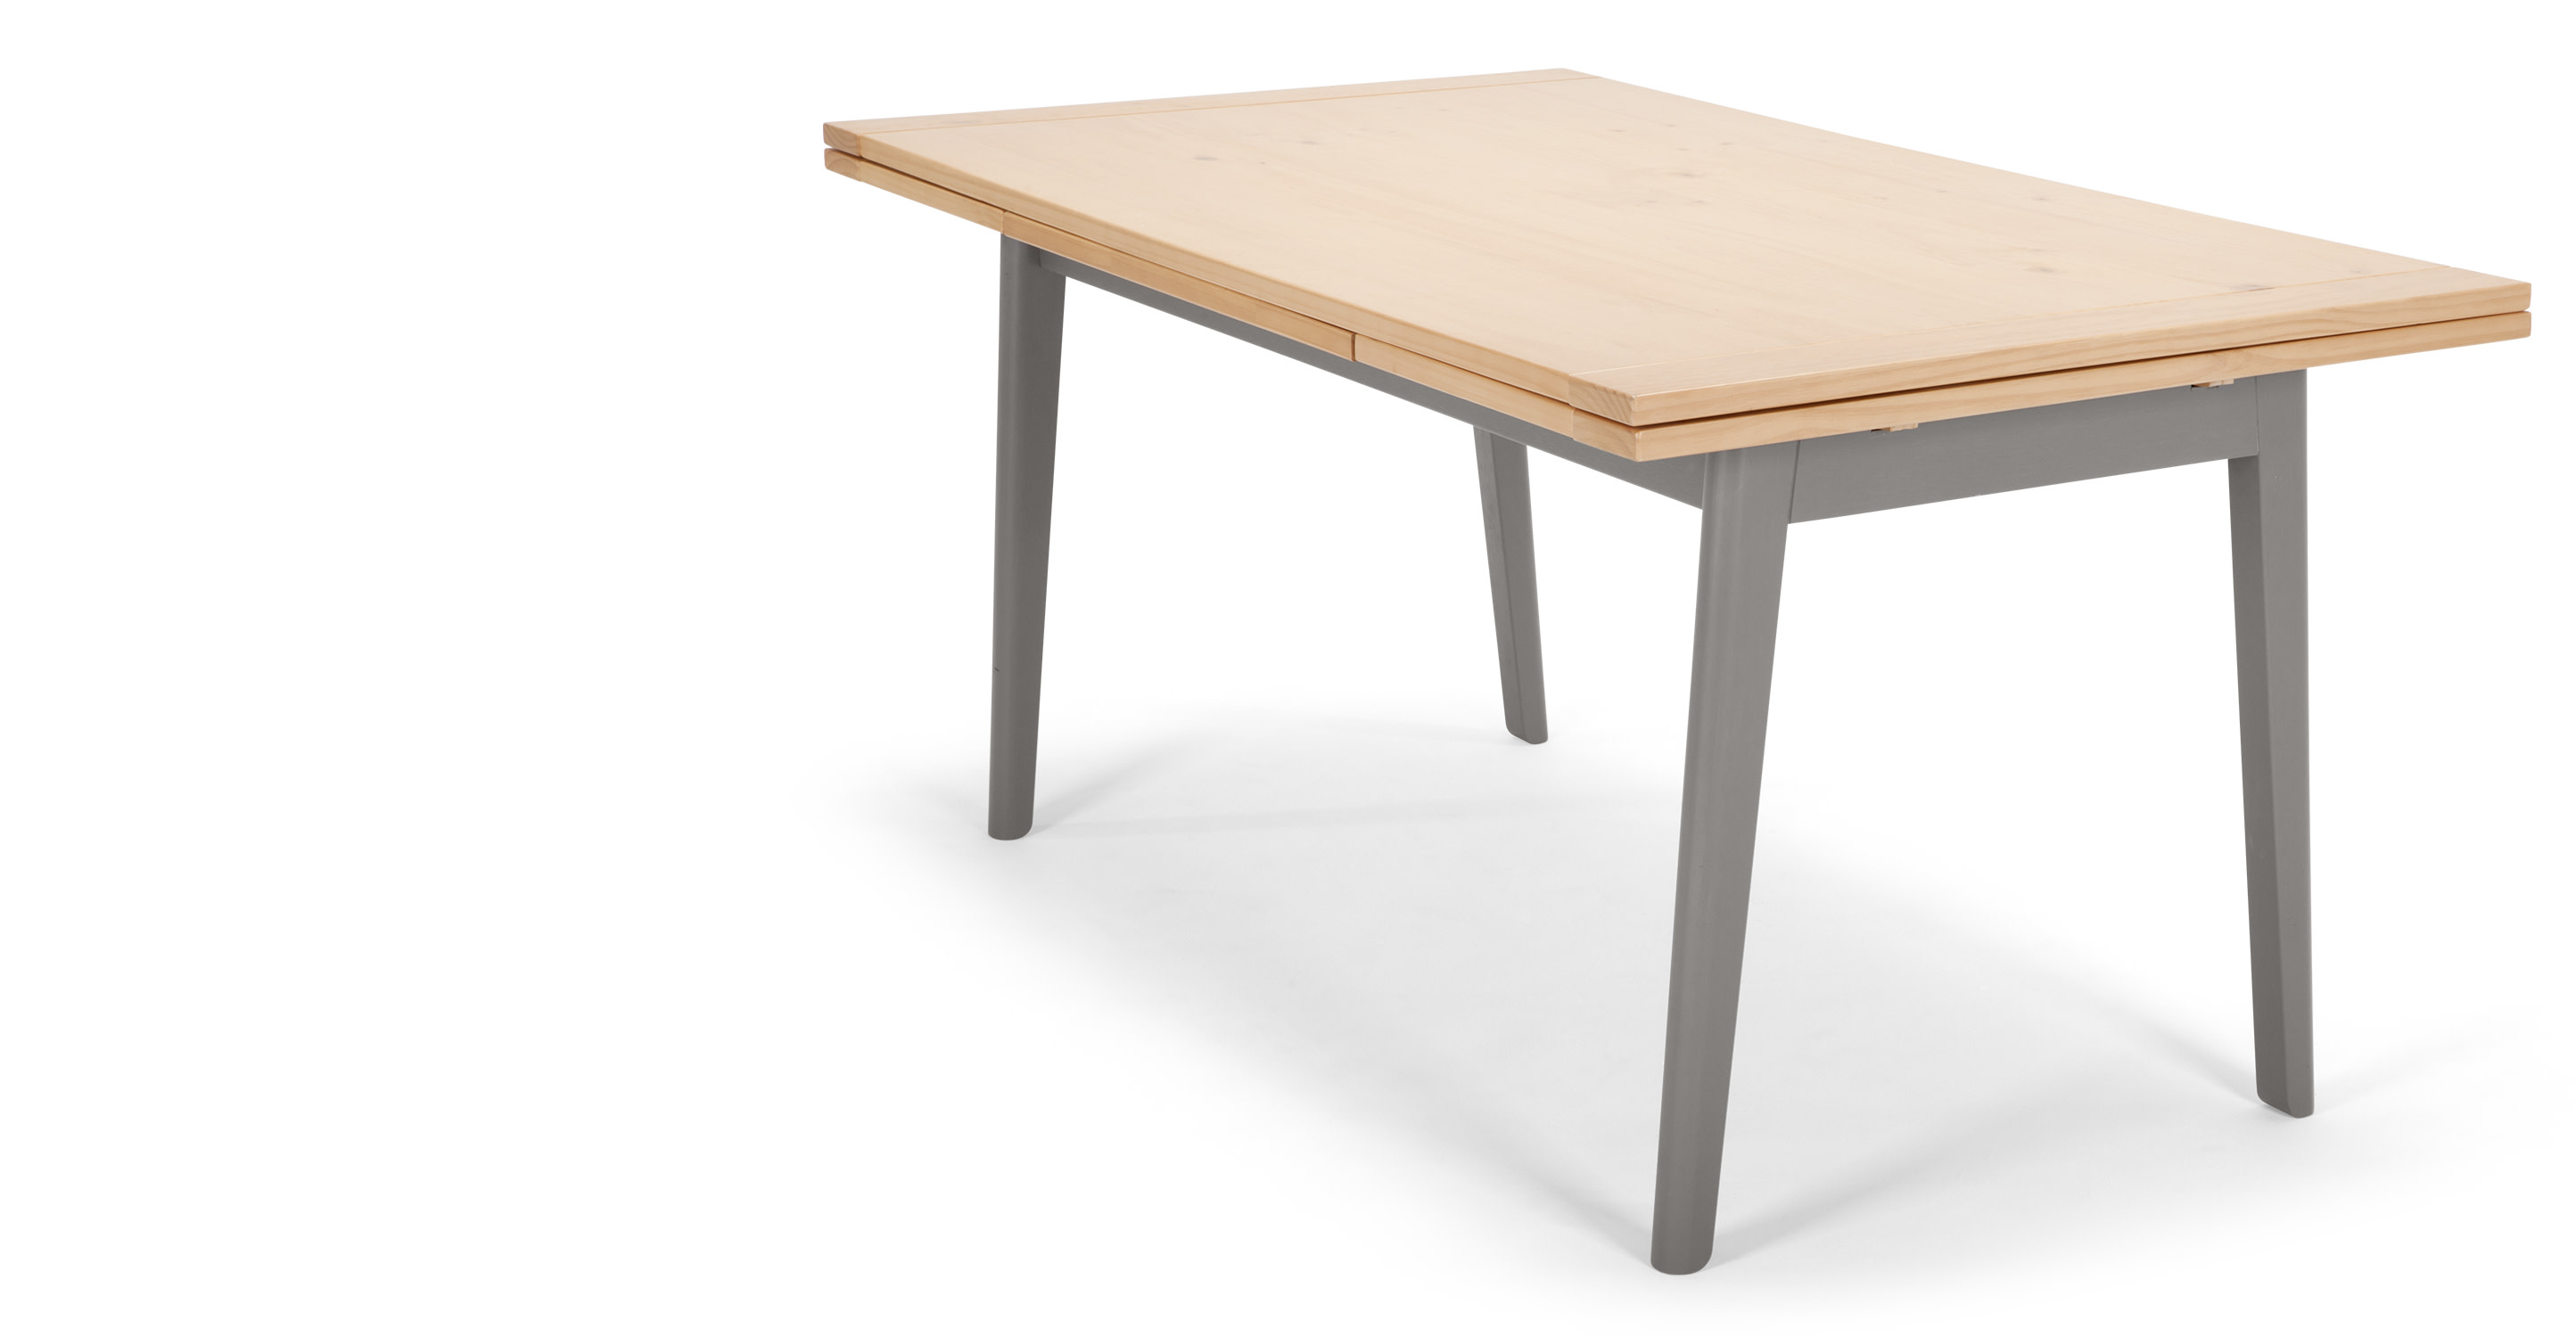 Kleur Extendable Dining Table Pine and Grey madecom : kleurextendablediningtablepineandgreylb01 from www.made.com size 2889 x 1500 jpeg 135kB